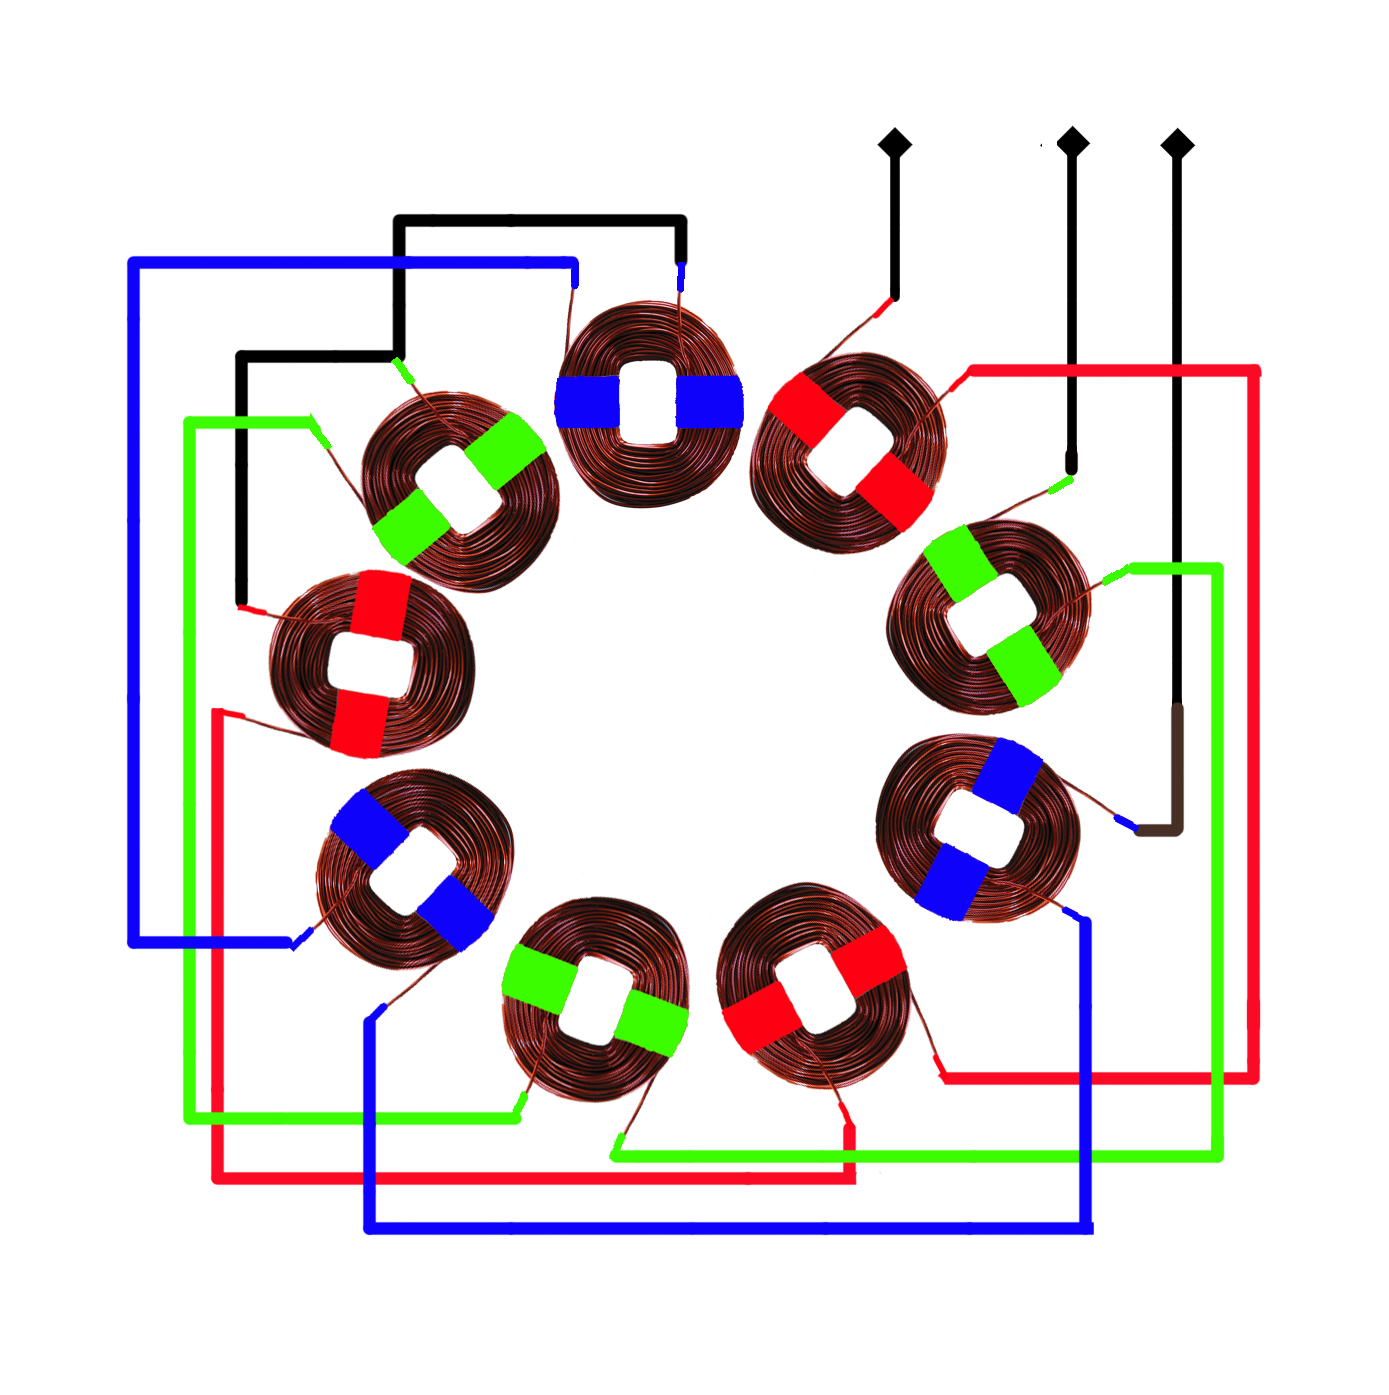 coils91 3 phase stator visualisation hugh piggott's blog Generator Circuit Breaker Wiring Diagram at crackthecode.co